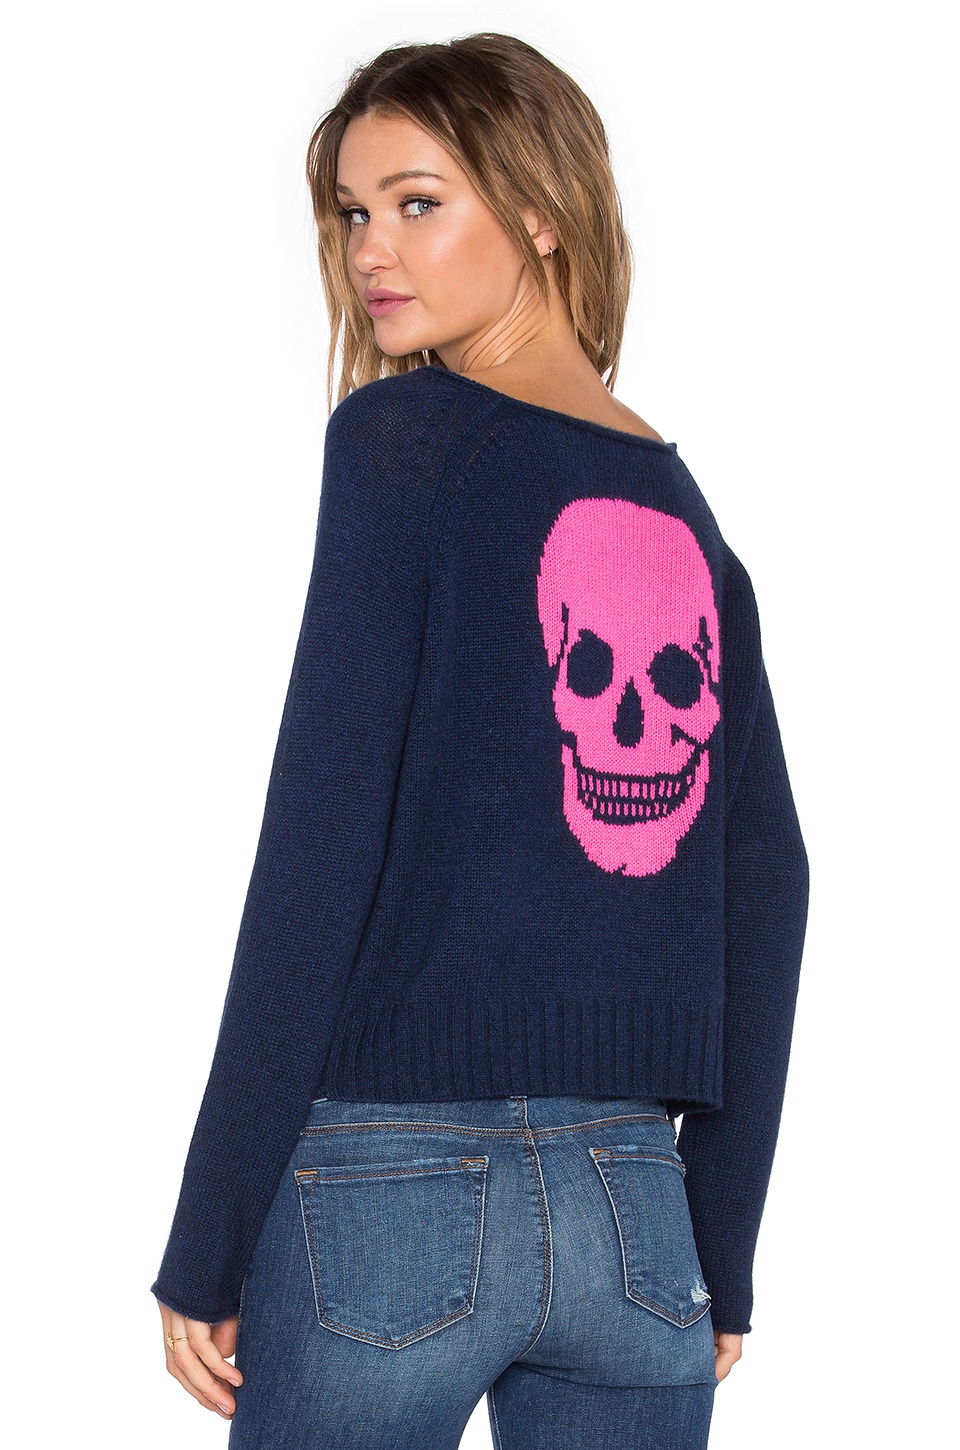 360CASHMERE Riffraff Skull Sweater in Ink & Dayglo Luther